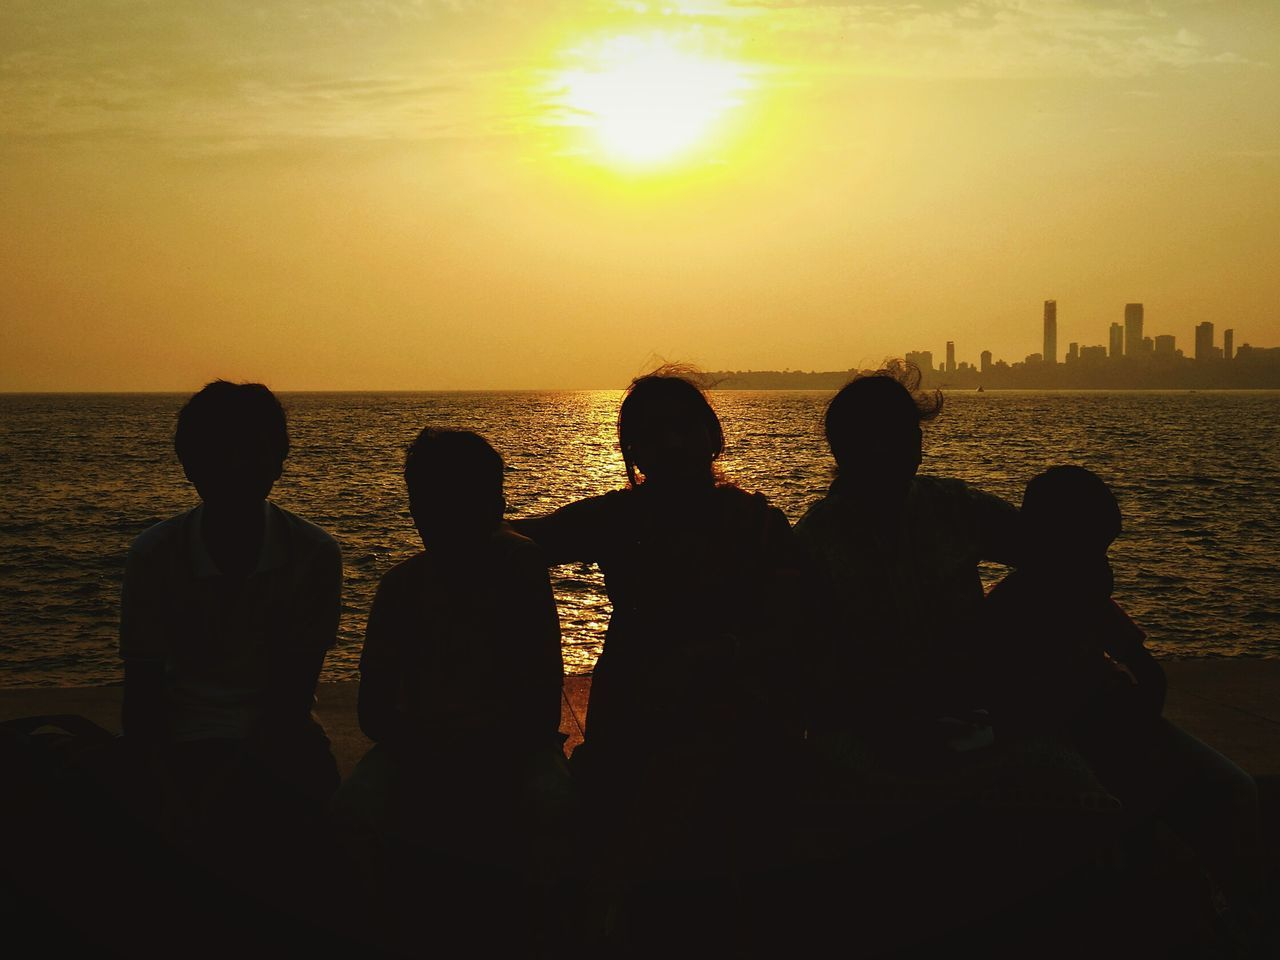 Sunset Silhouette Sun Back Lit Togetherness Sunlight Friendship Bonding Outdoors Adults Only People Sunbeam Adult Unity Beauty In Nature Sky Day Awesome_shots Awesome Day Hanging Out With Friends Outdoor Photography Awesome_view AWESOME!!